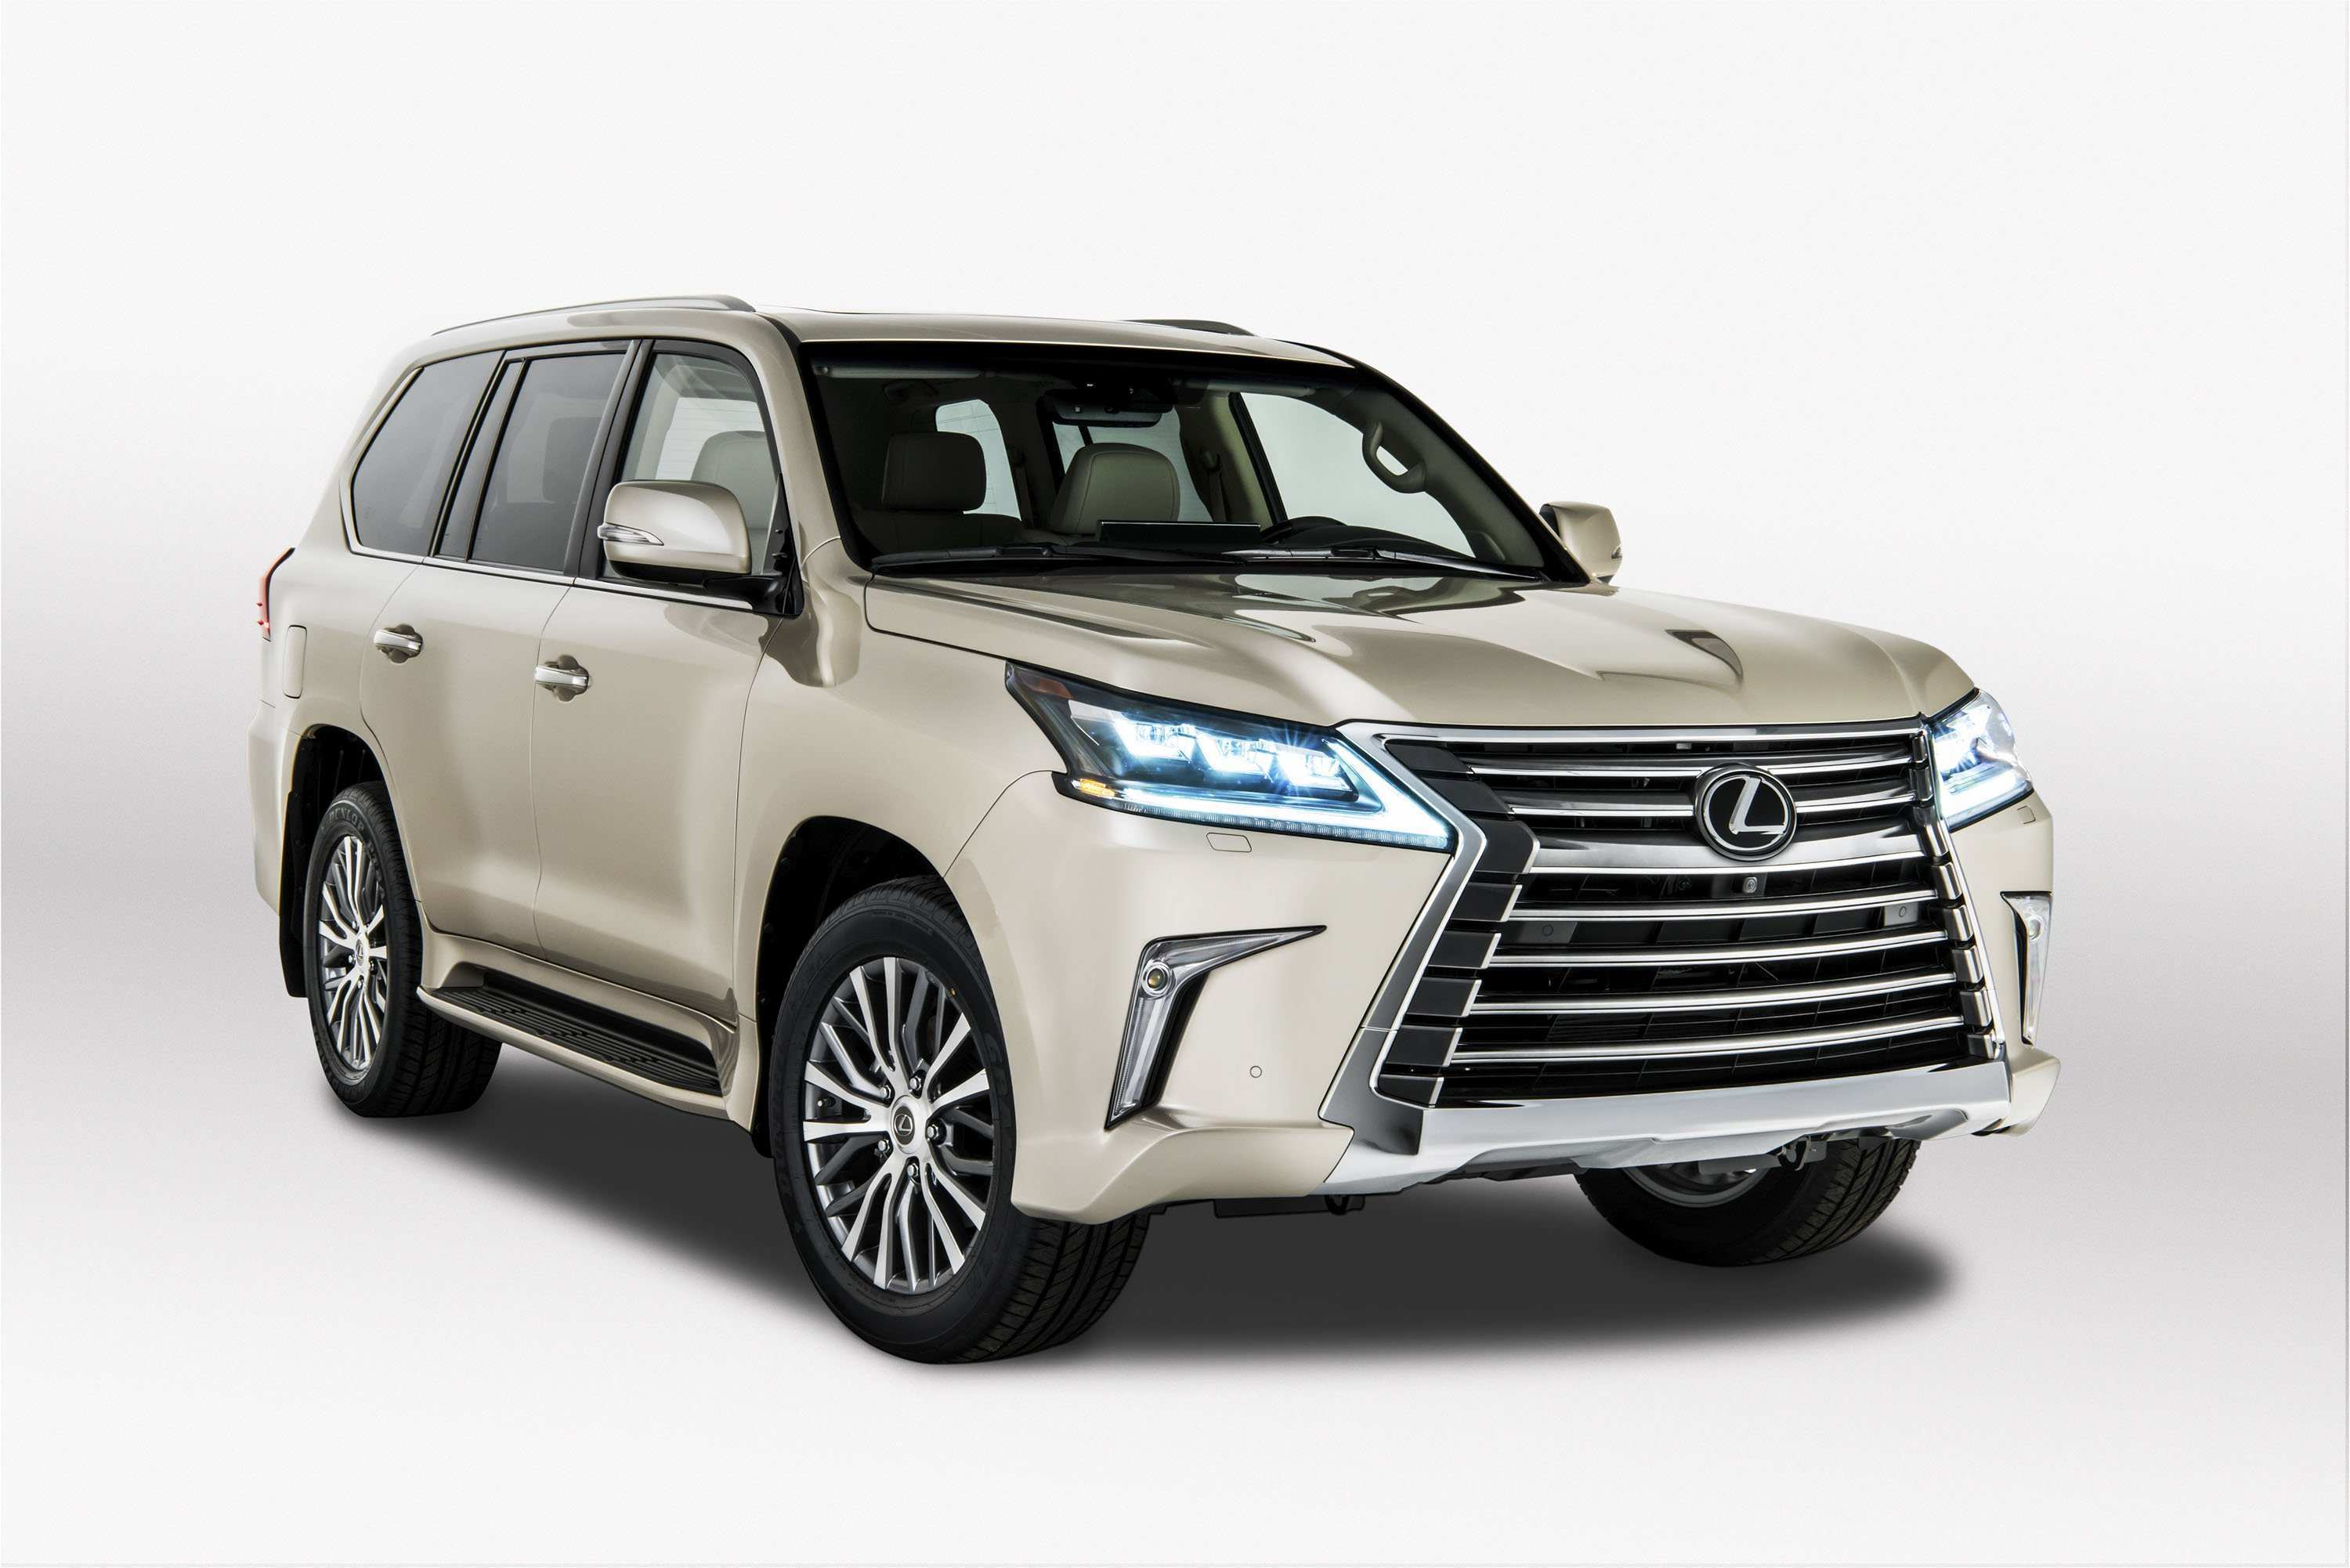 59 Great 2019 Lexus Lx 570 Review by 2019 Lexus Lx 570